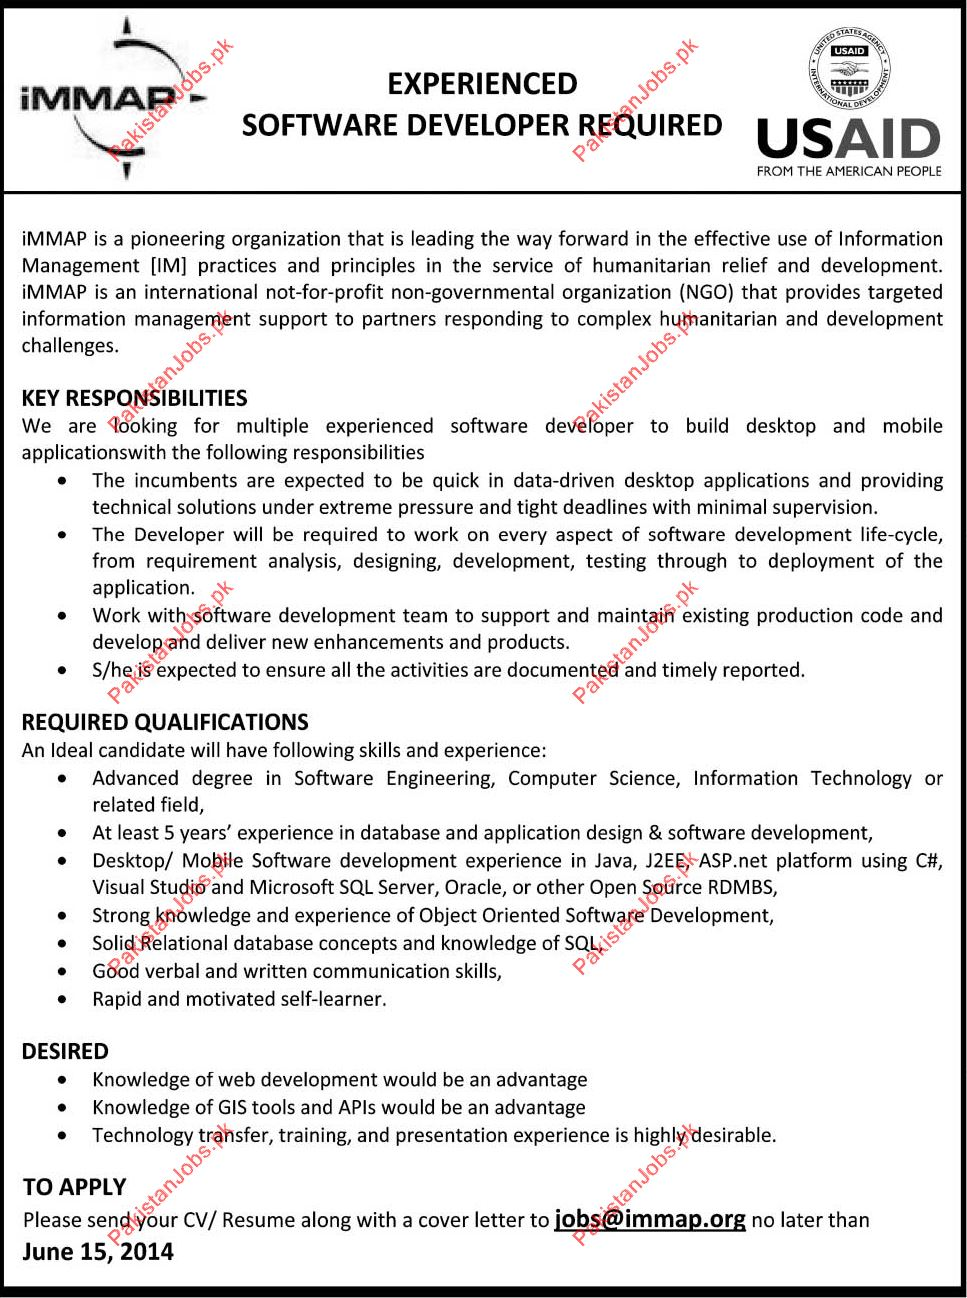 Software Developer Required - USAID Jobs in Islamabad Pakistan ...